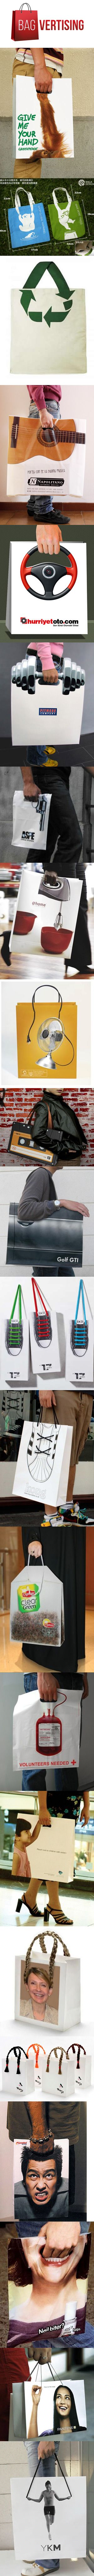 A bag is never JUST a bag! Super creative guerrilla marketing solutions using BAGVERTISING